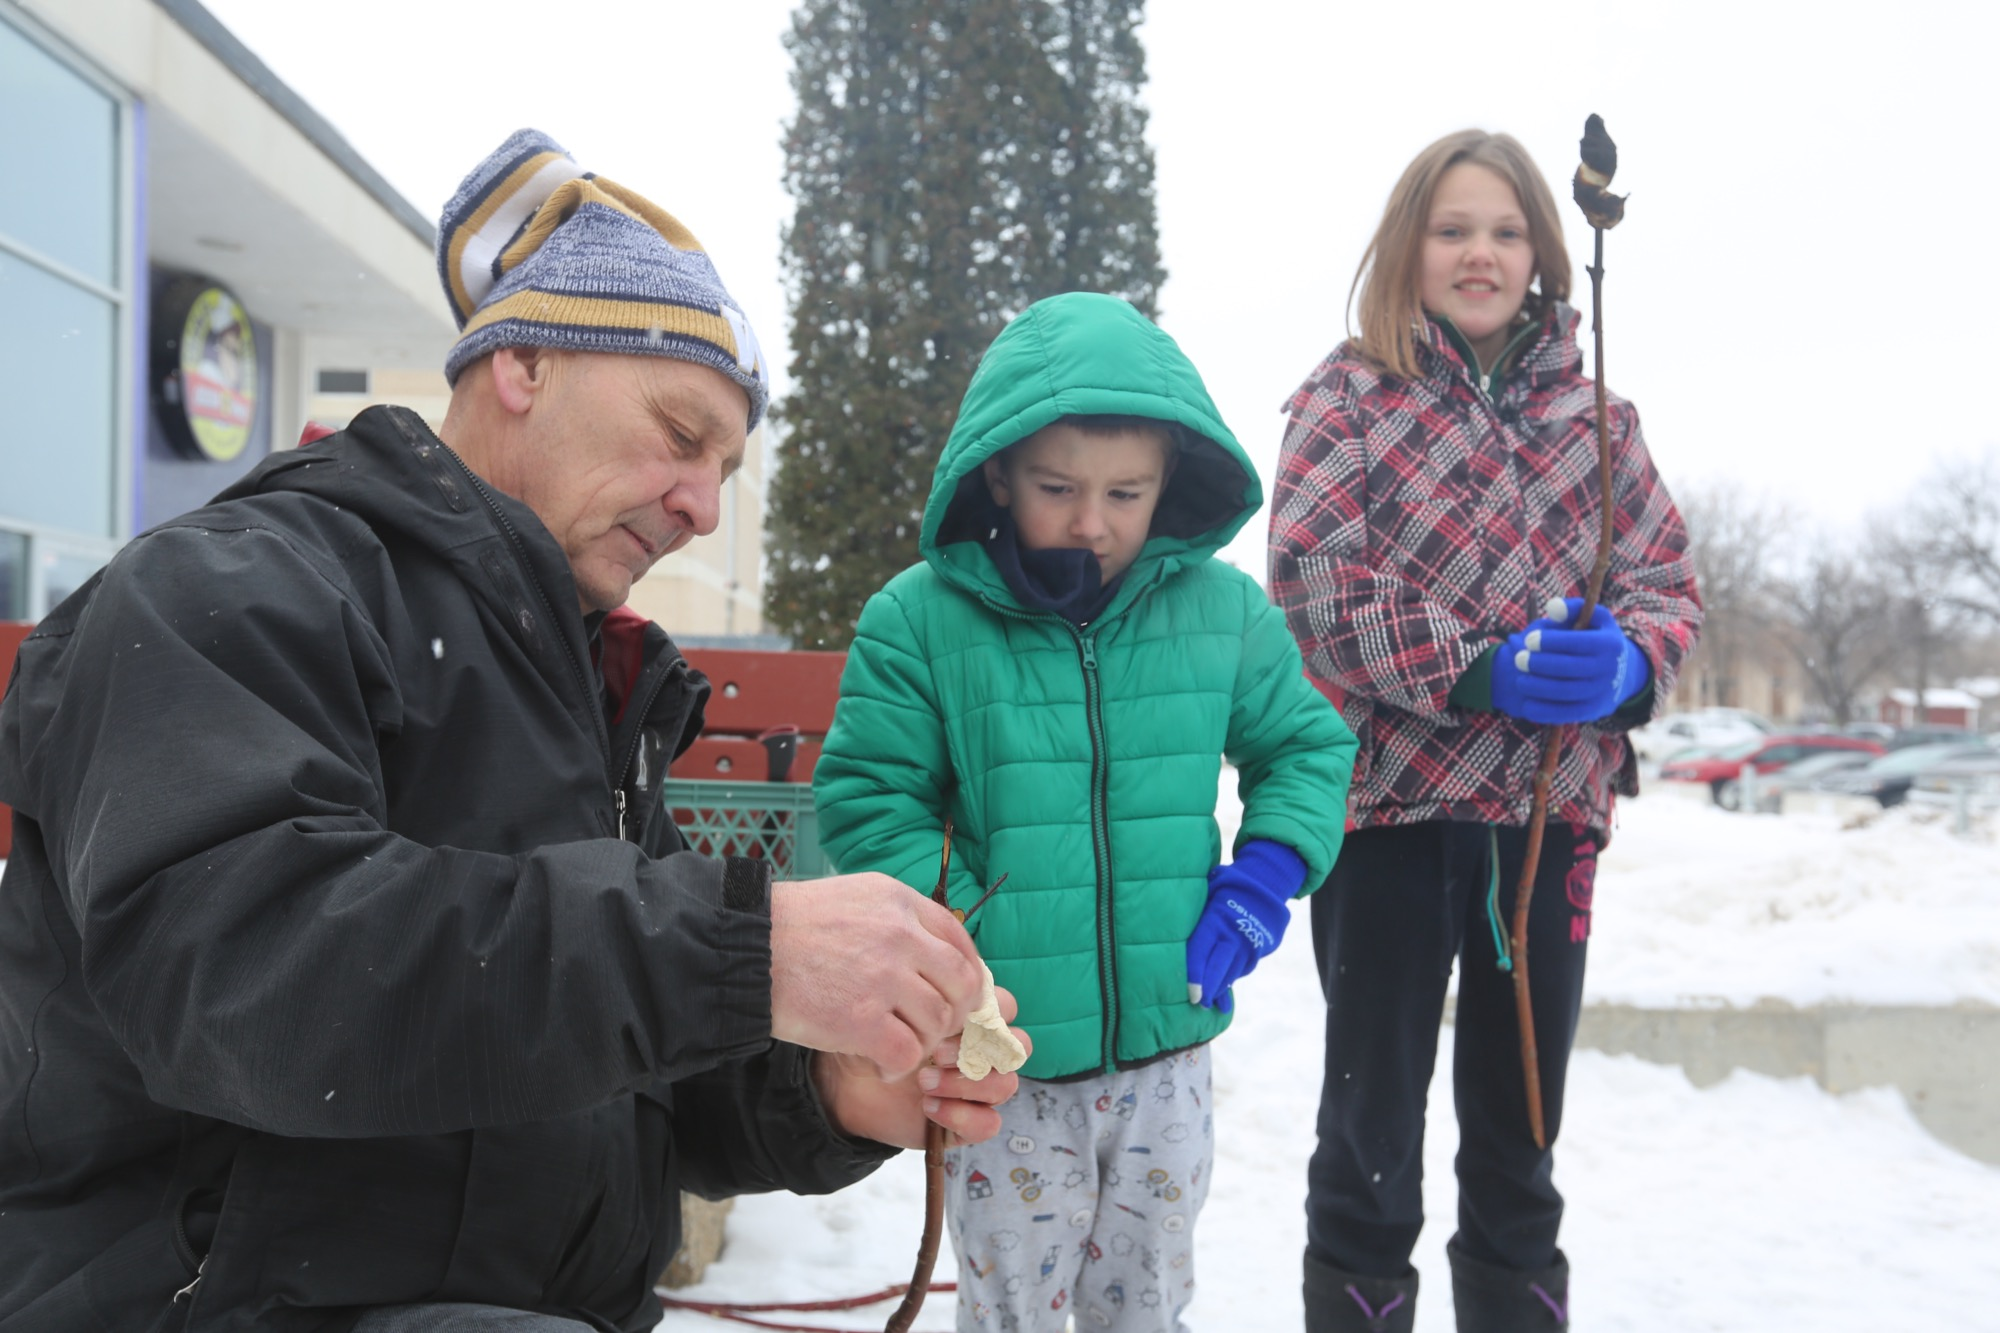 Jim Dyck helps Chase Pople wrap bannock on a stick as Peighton Oickle, bannock already cooked over the fire, looks on.